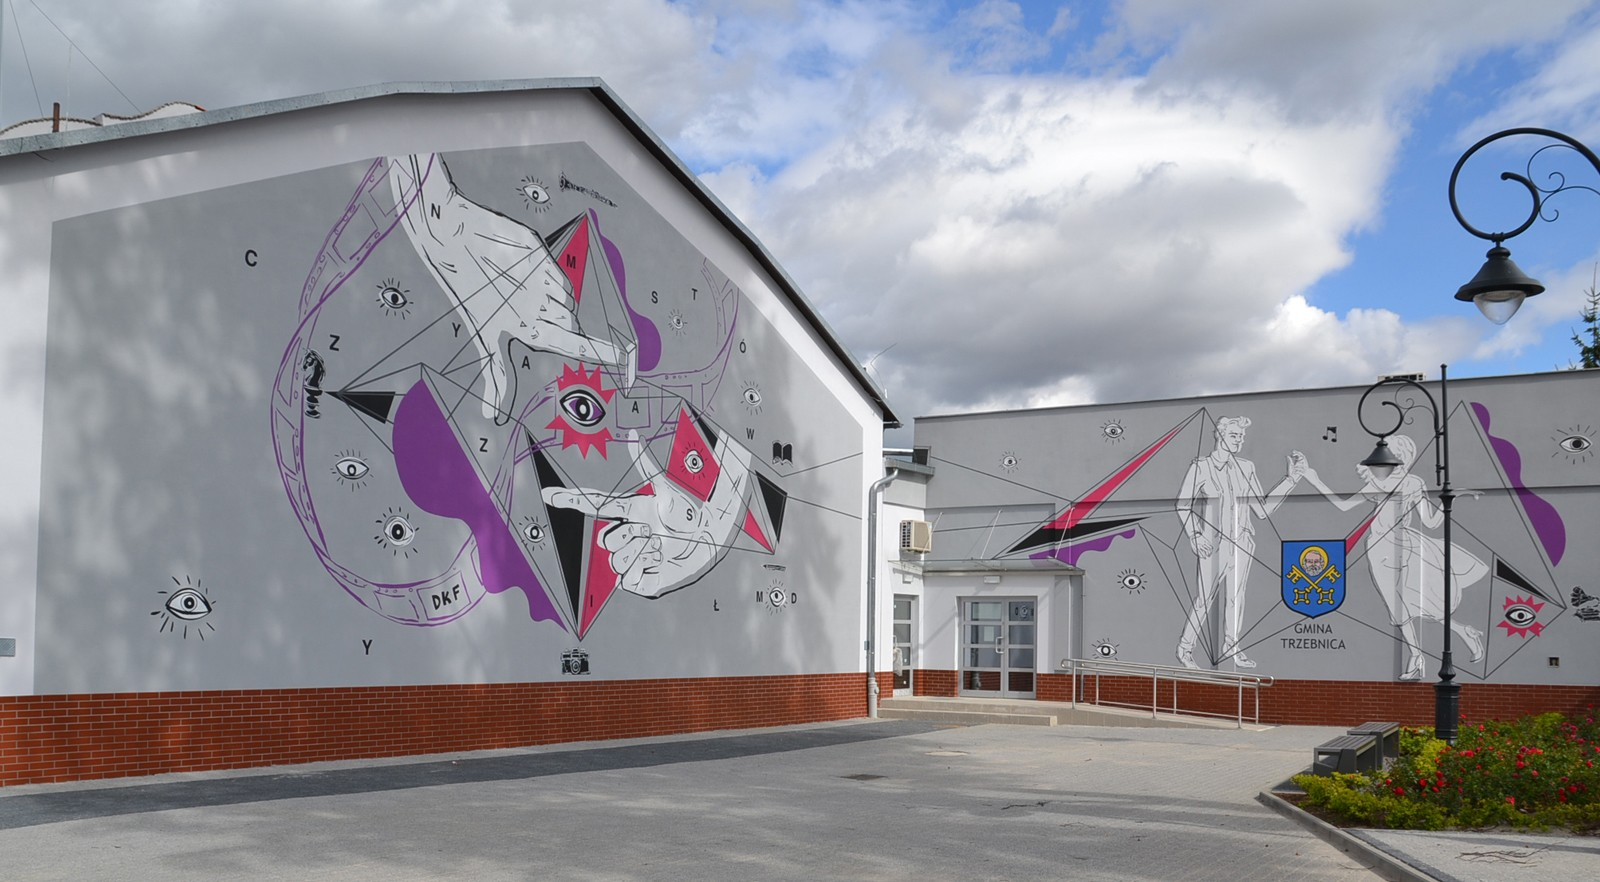 Trzebnica District mural on the wall | Community mural | Portfolio